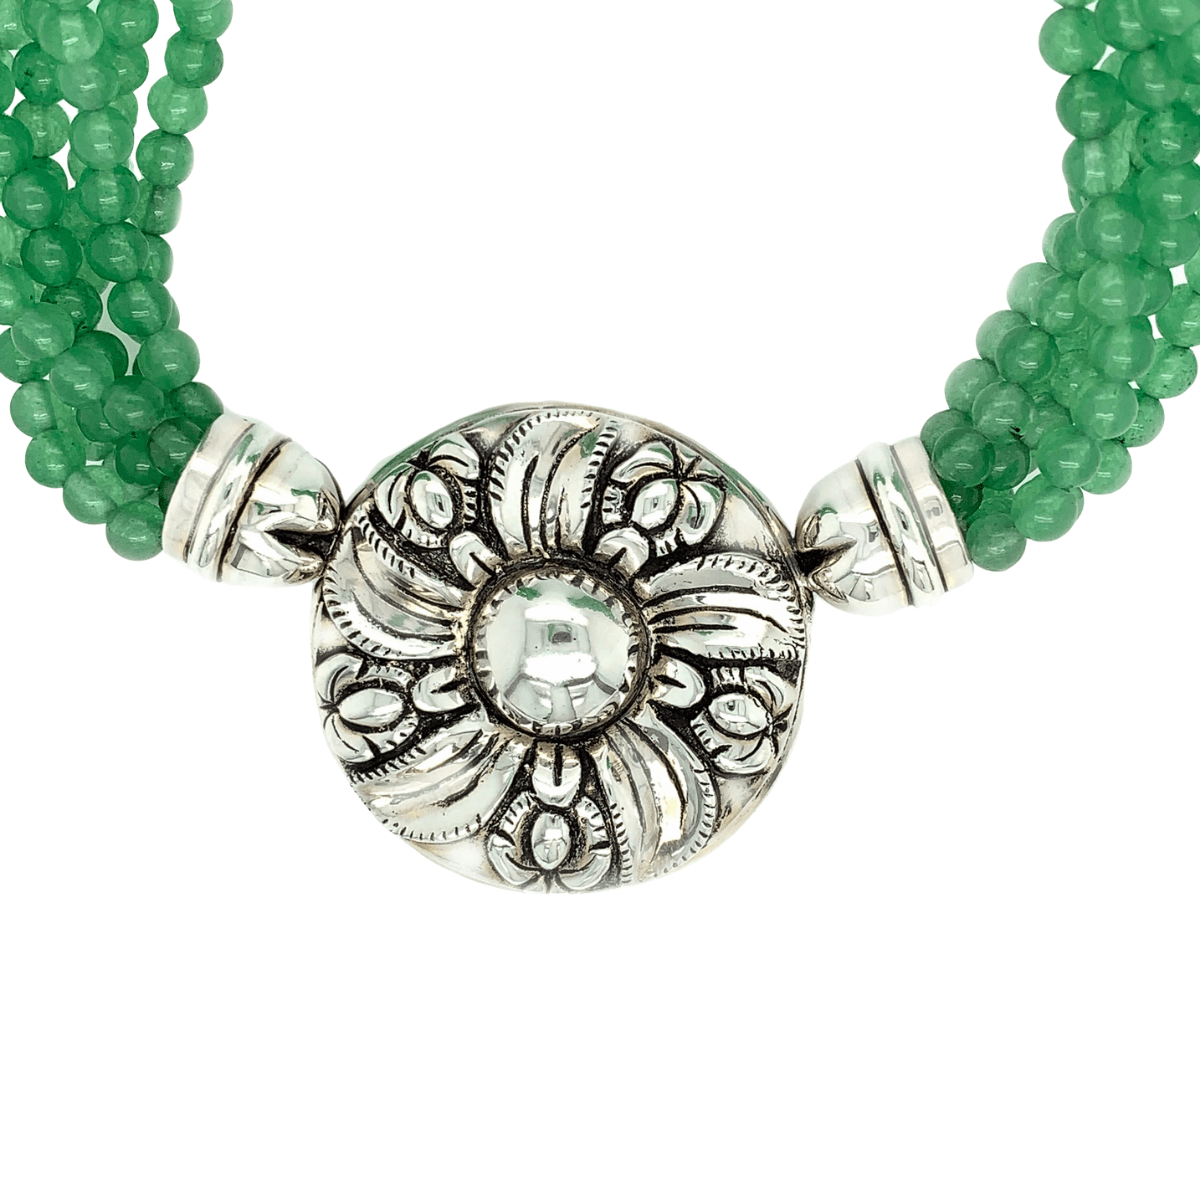 Green Jade Strands & Sterling Silver Colonial Flower Necklace - Qinti - The Peruvian Shop